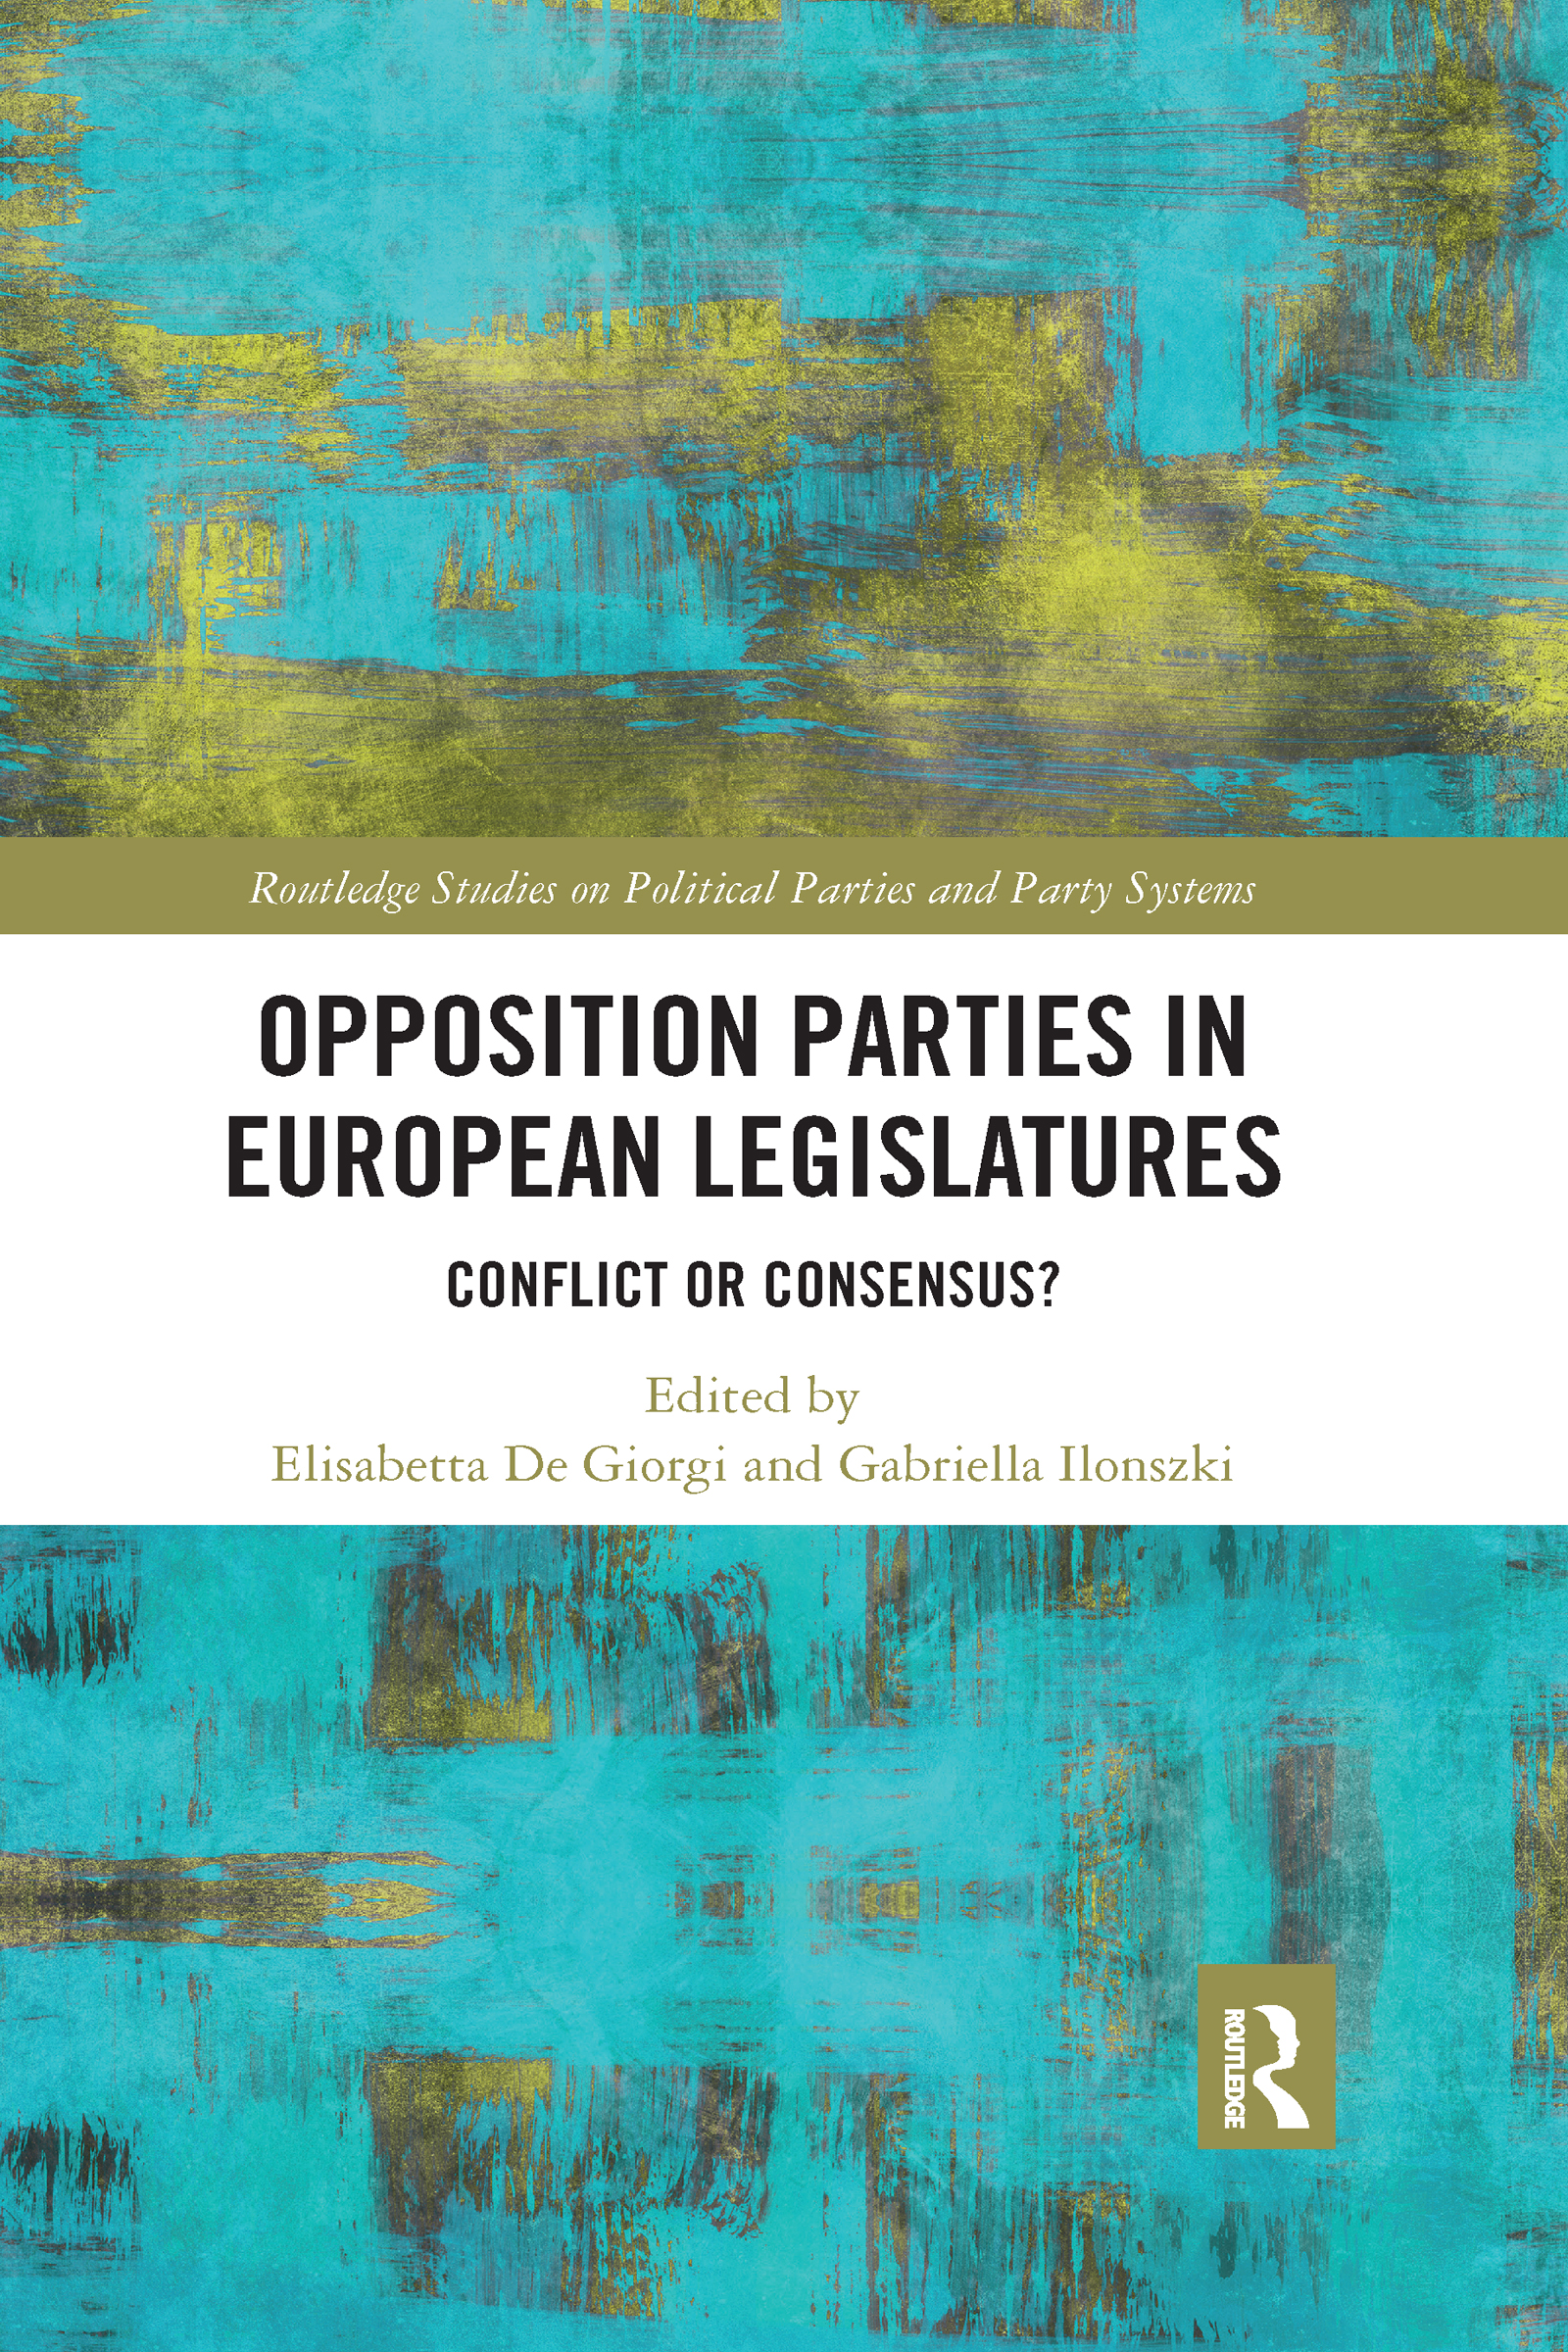 Opposition Parties in European Legislatures